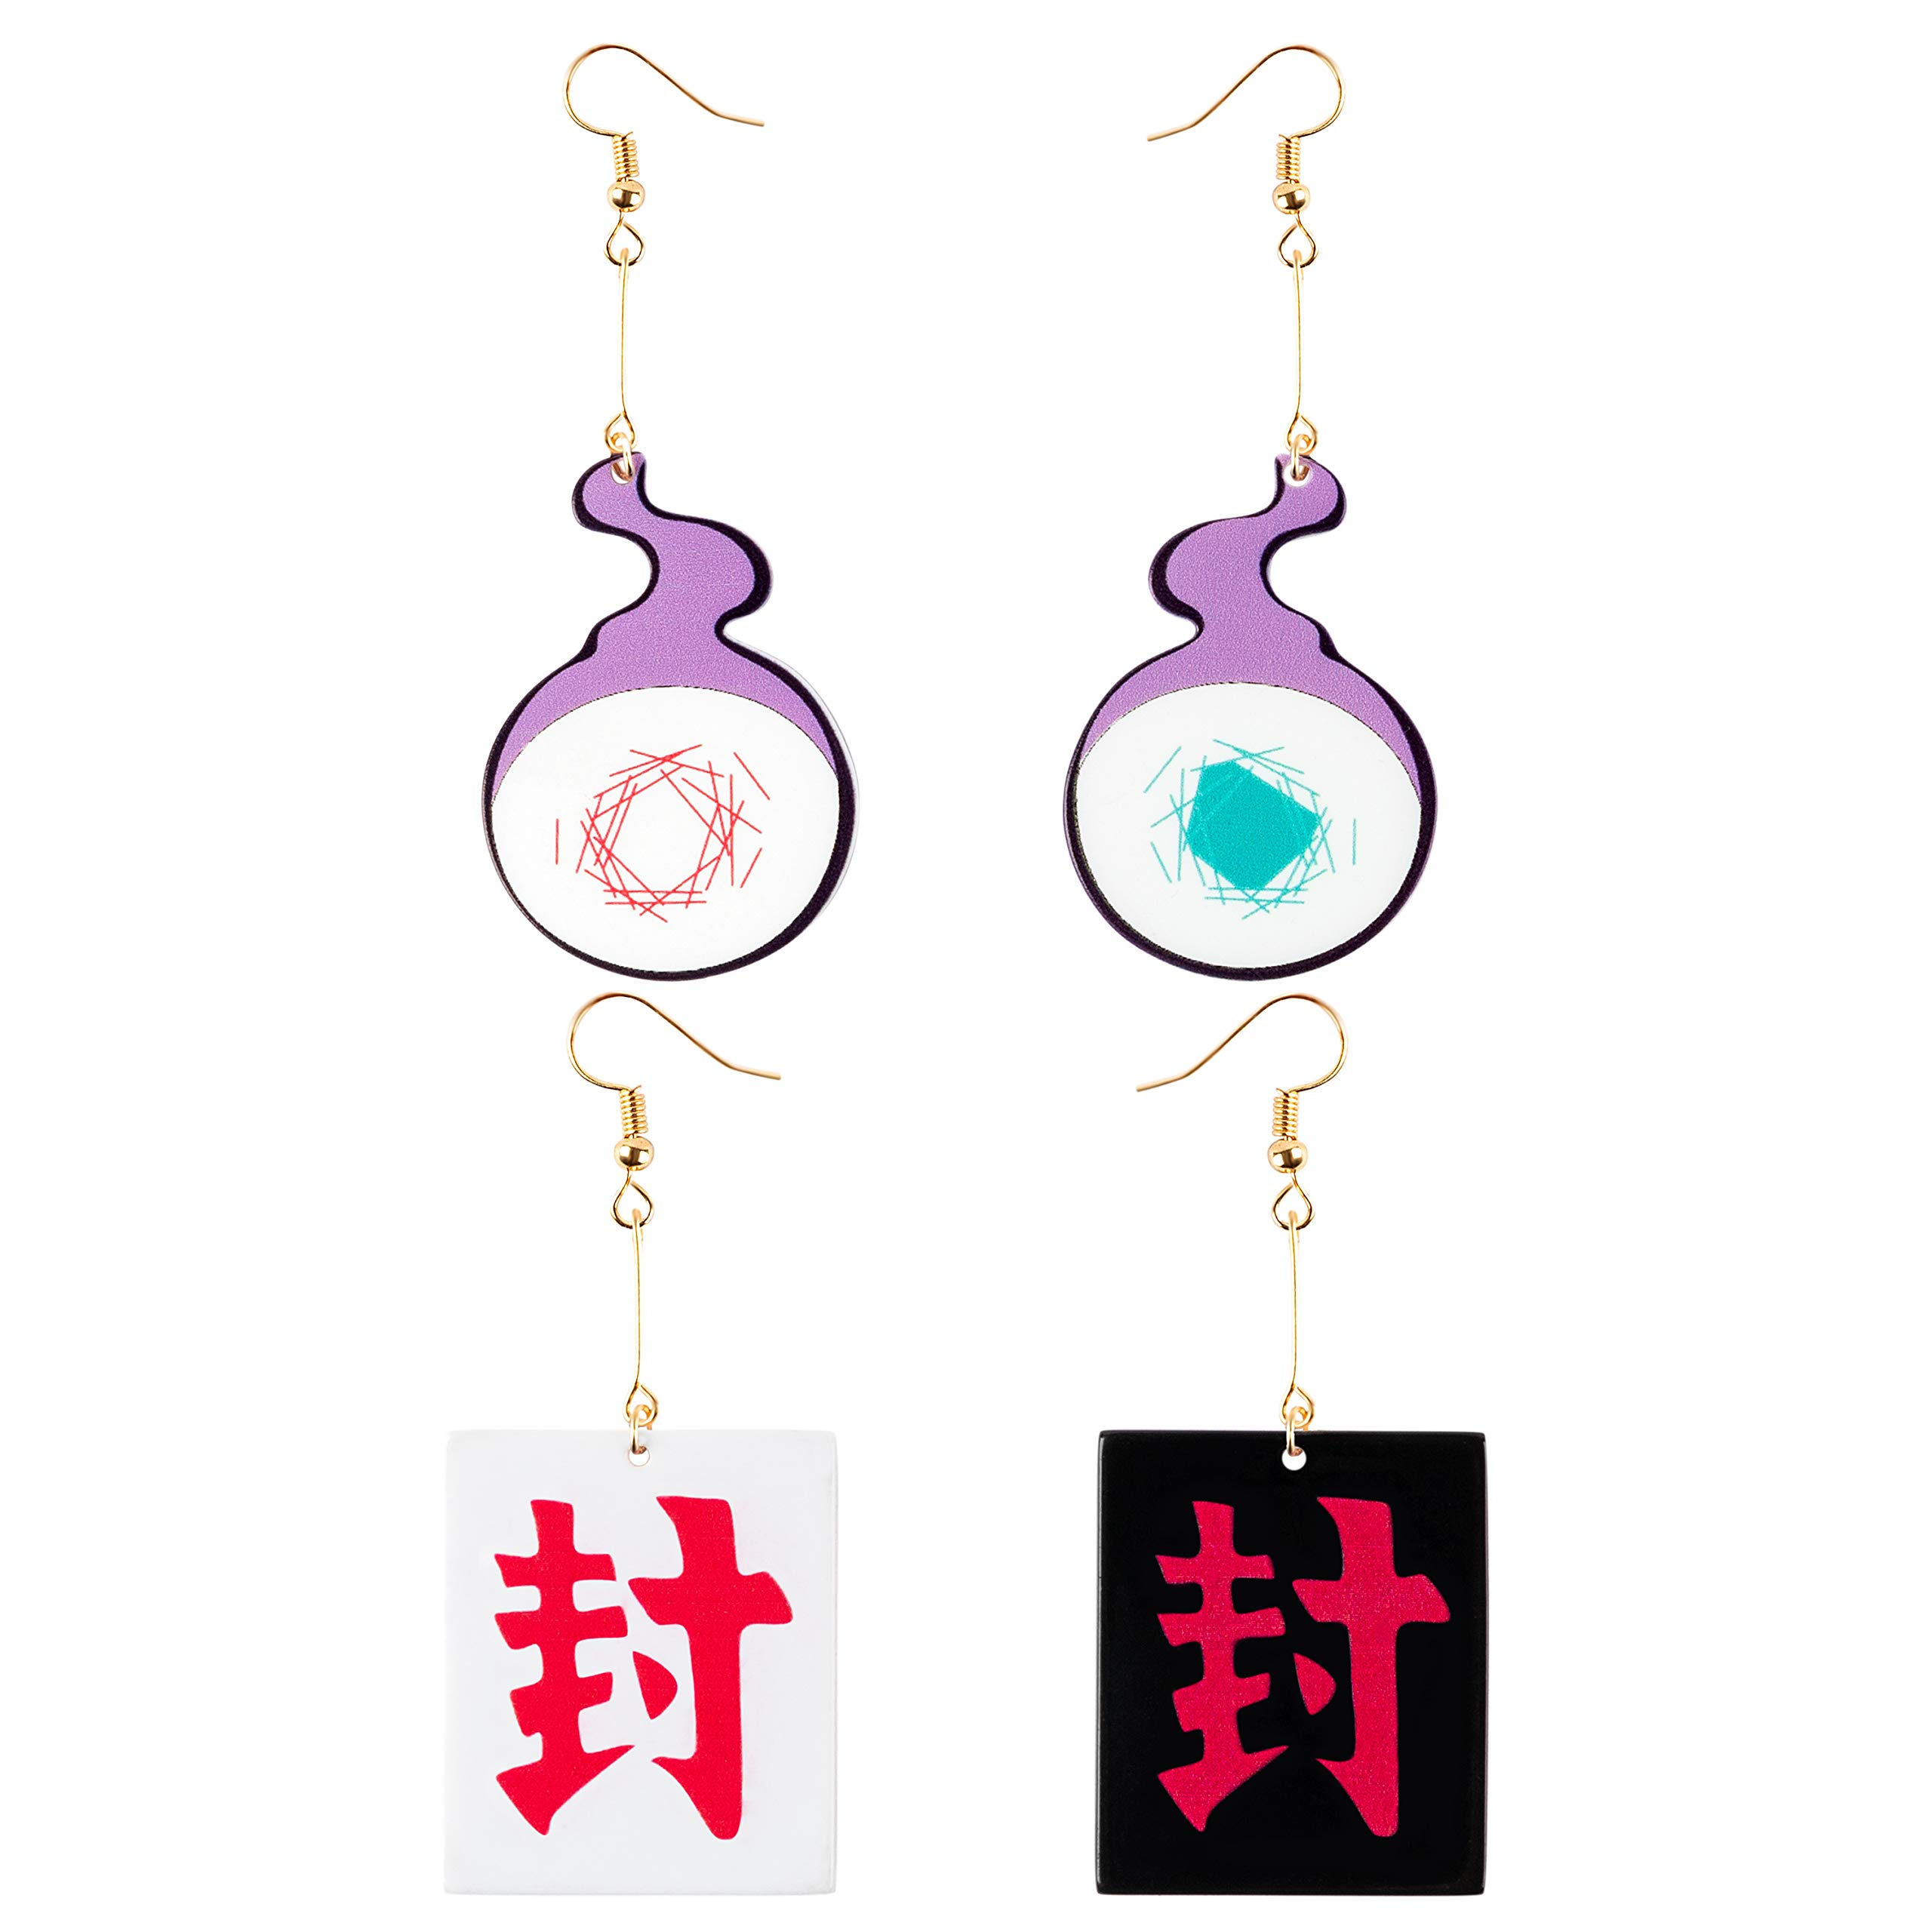 Eartim 2 Pairs Toilet Bound Hanako Kun Earrings, Fashion Anime Cosplay Acrylic Drop Earrings for Women, Teens, Friends, Girls Birthday Valentine's Gift Friendship Party Jewelry Dress Up Accessories